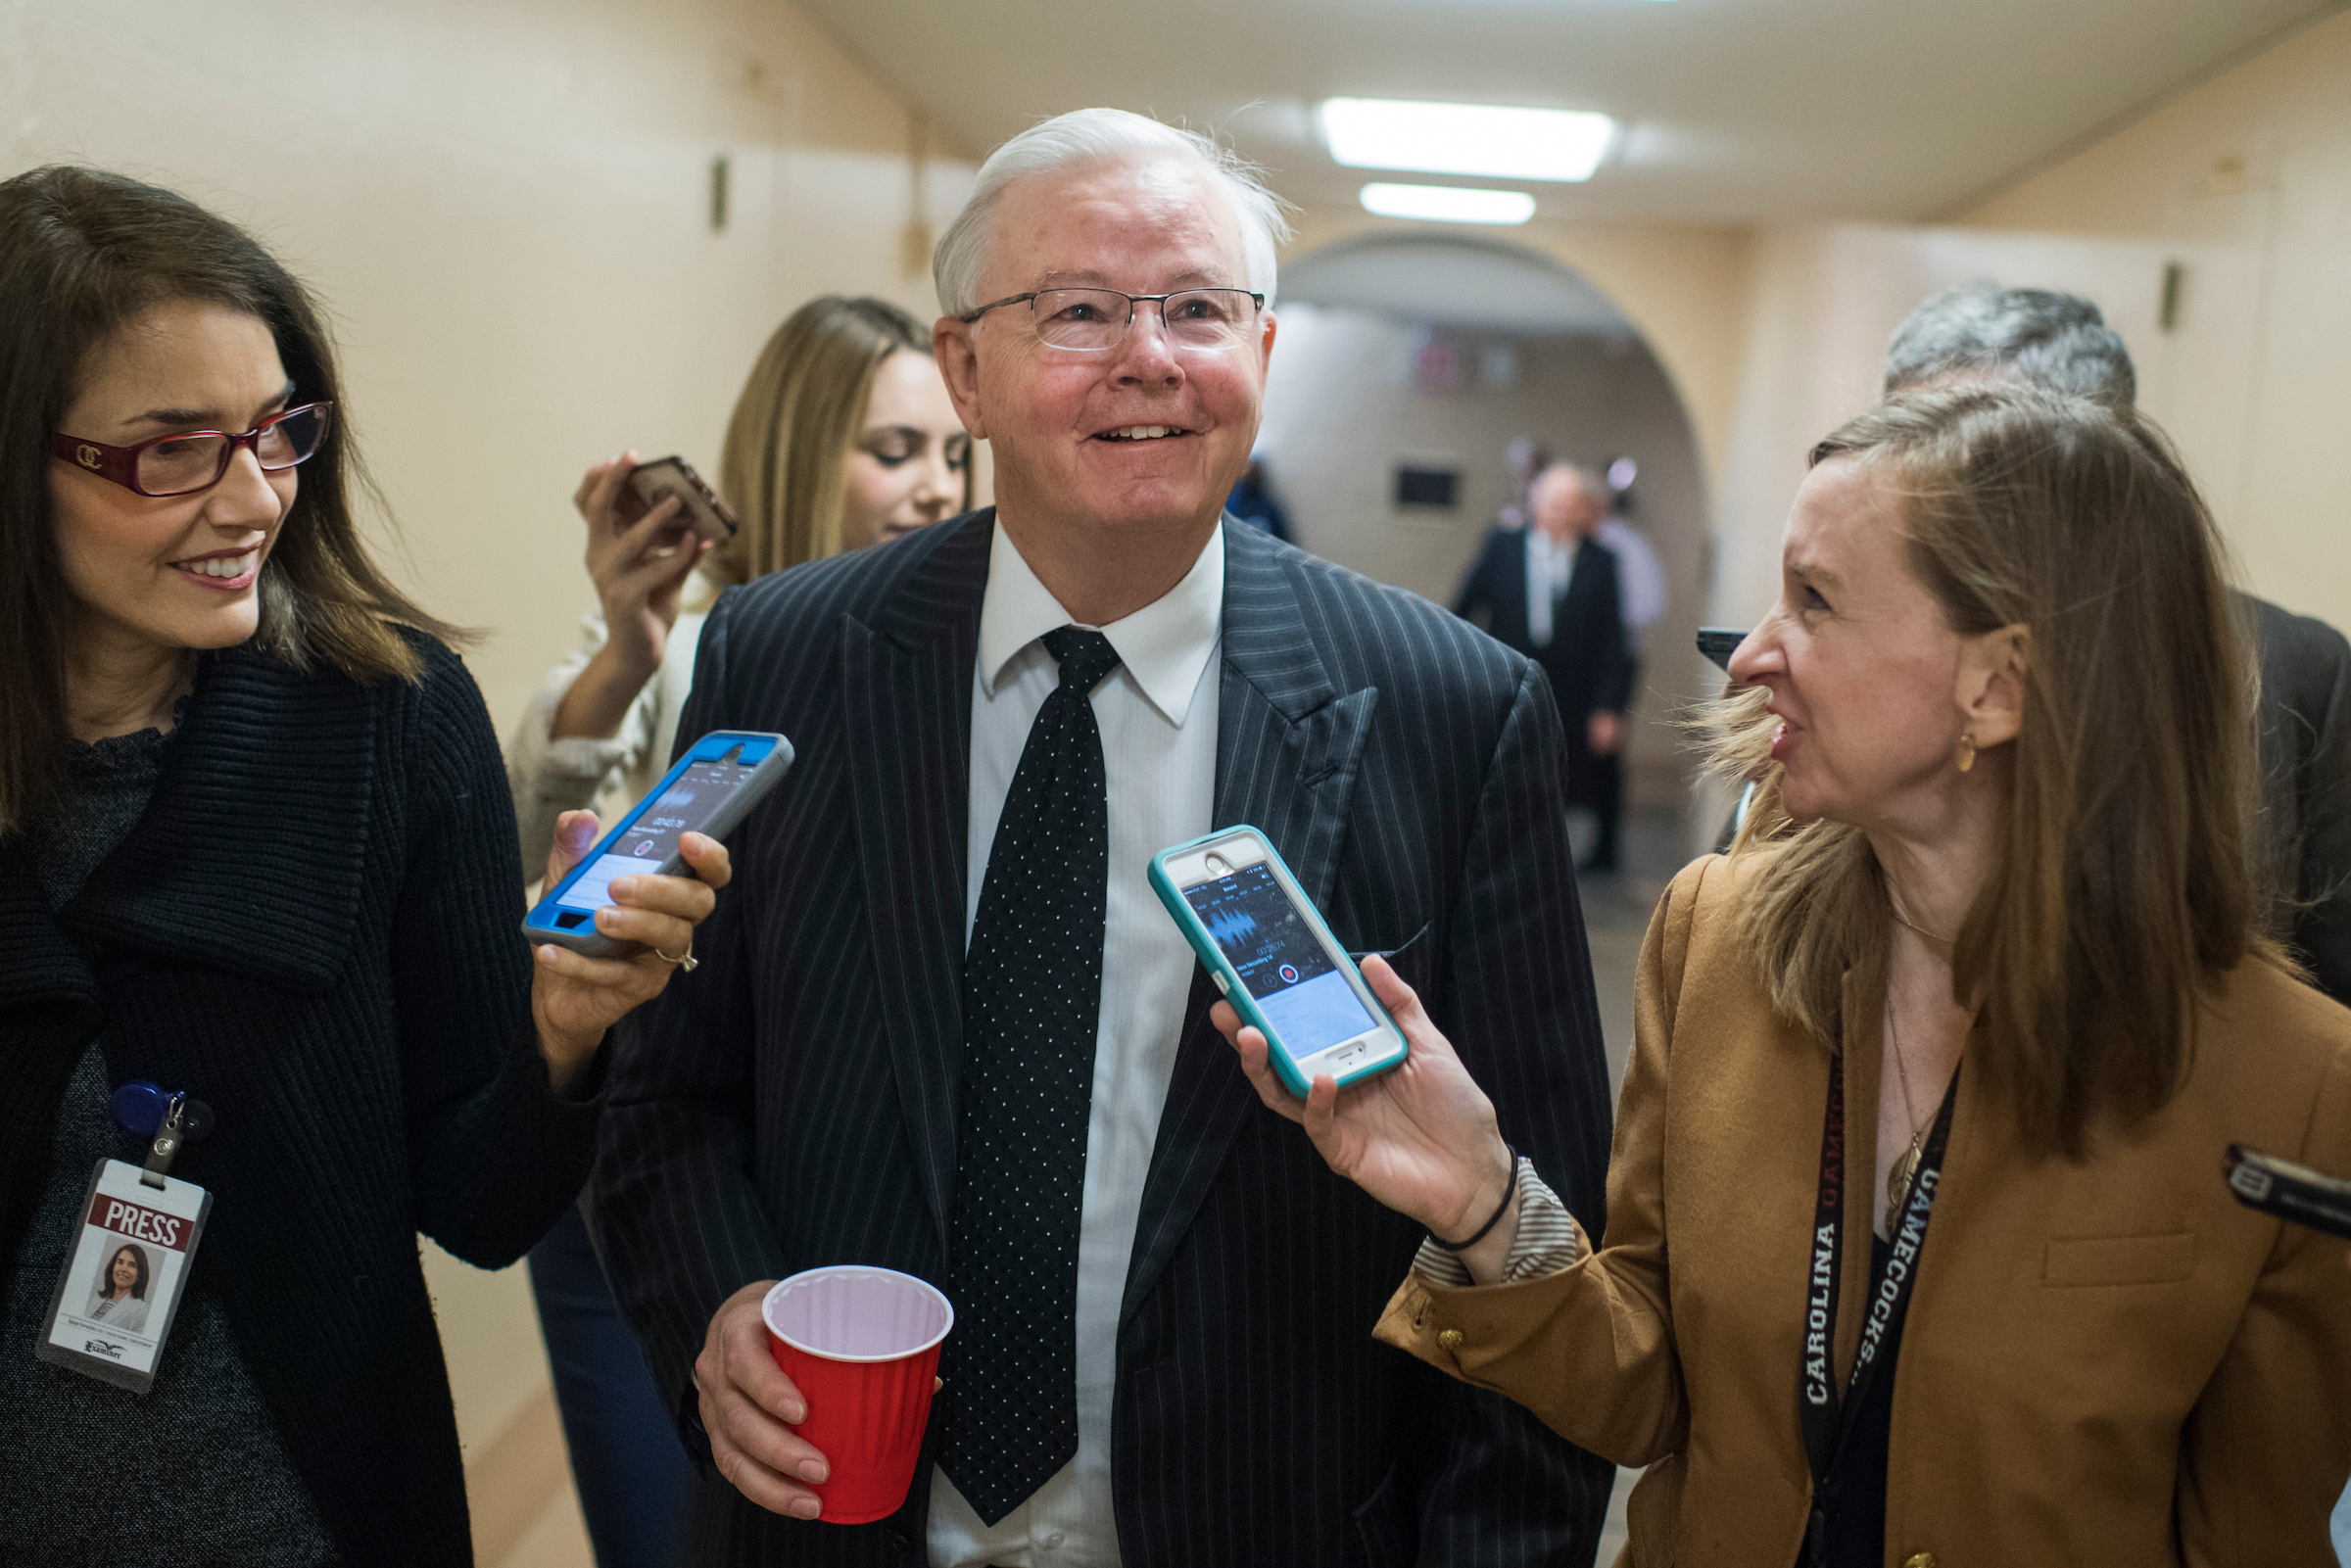 UNITED STATES - NOVEMBER 29: Rep. Joe Barton, R-Texas, talks with reporters after the House Republican Conference meeting in the Capitol on November 29, 2017. (Photo By Tom Williams/CQ Roll Call)